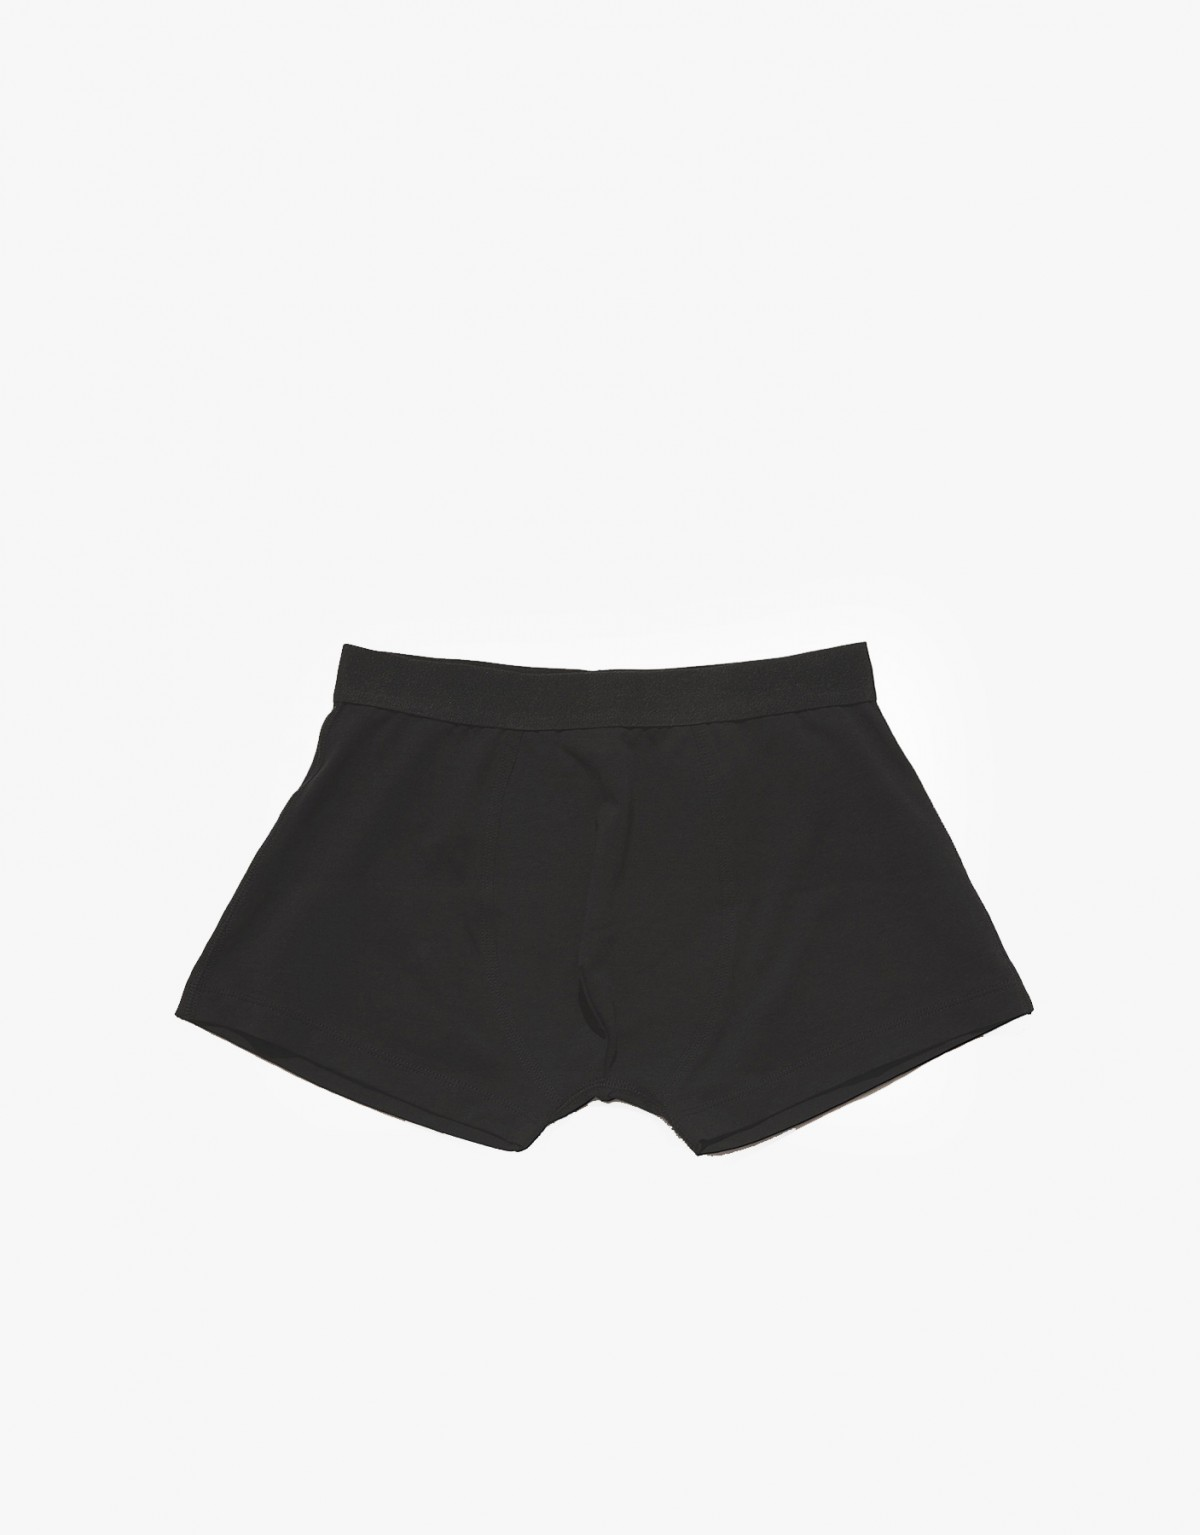 AO CMS Boxer Briefs in Black